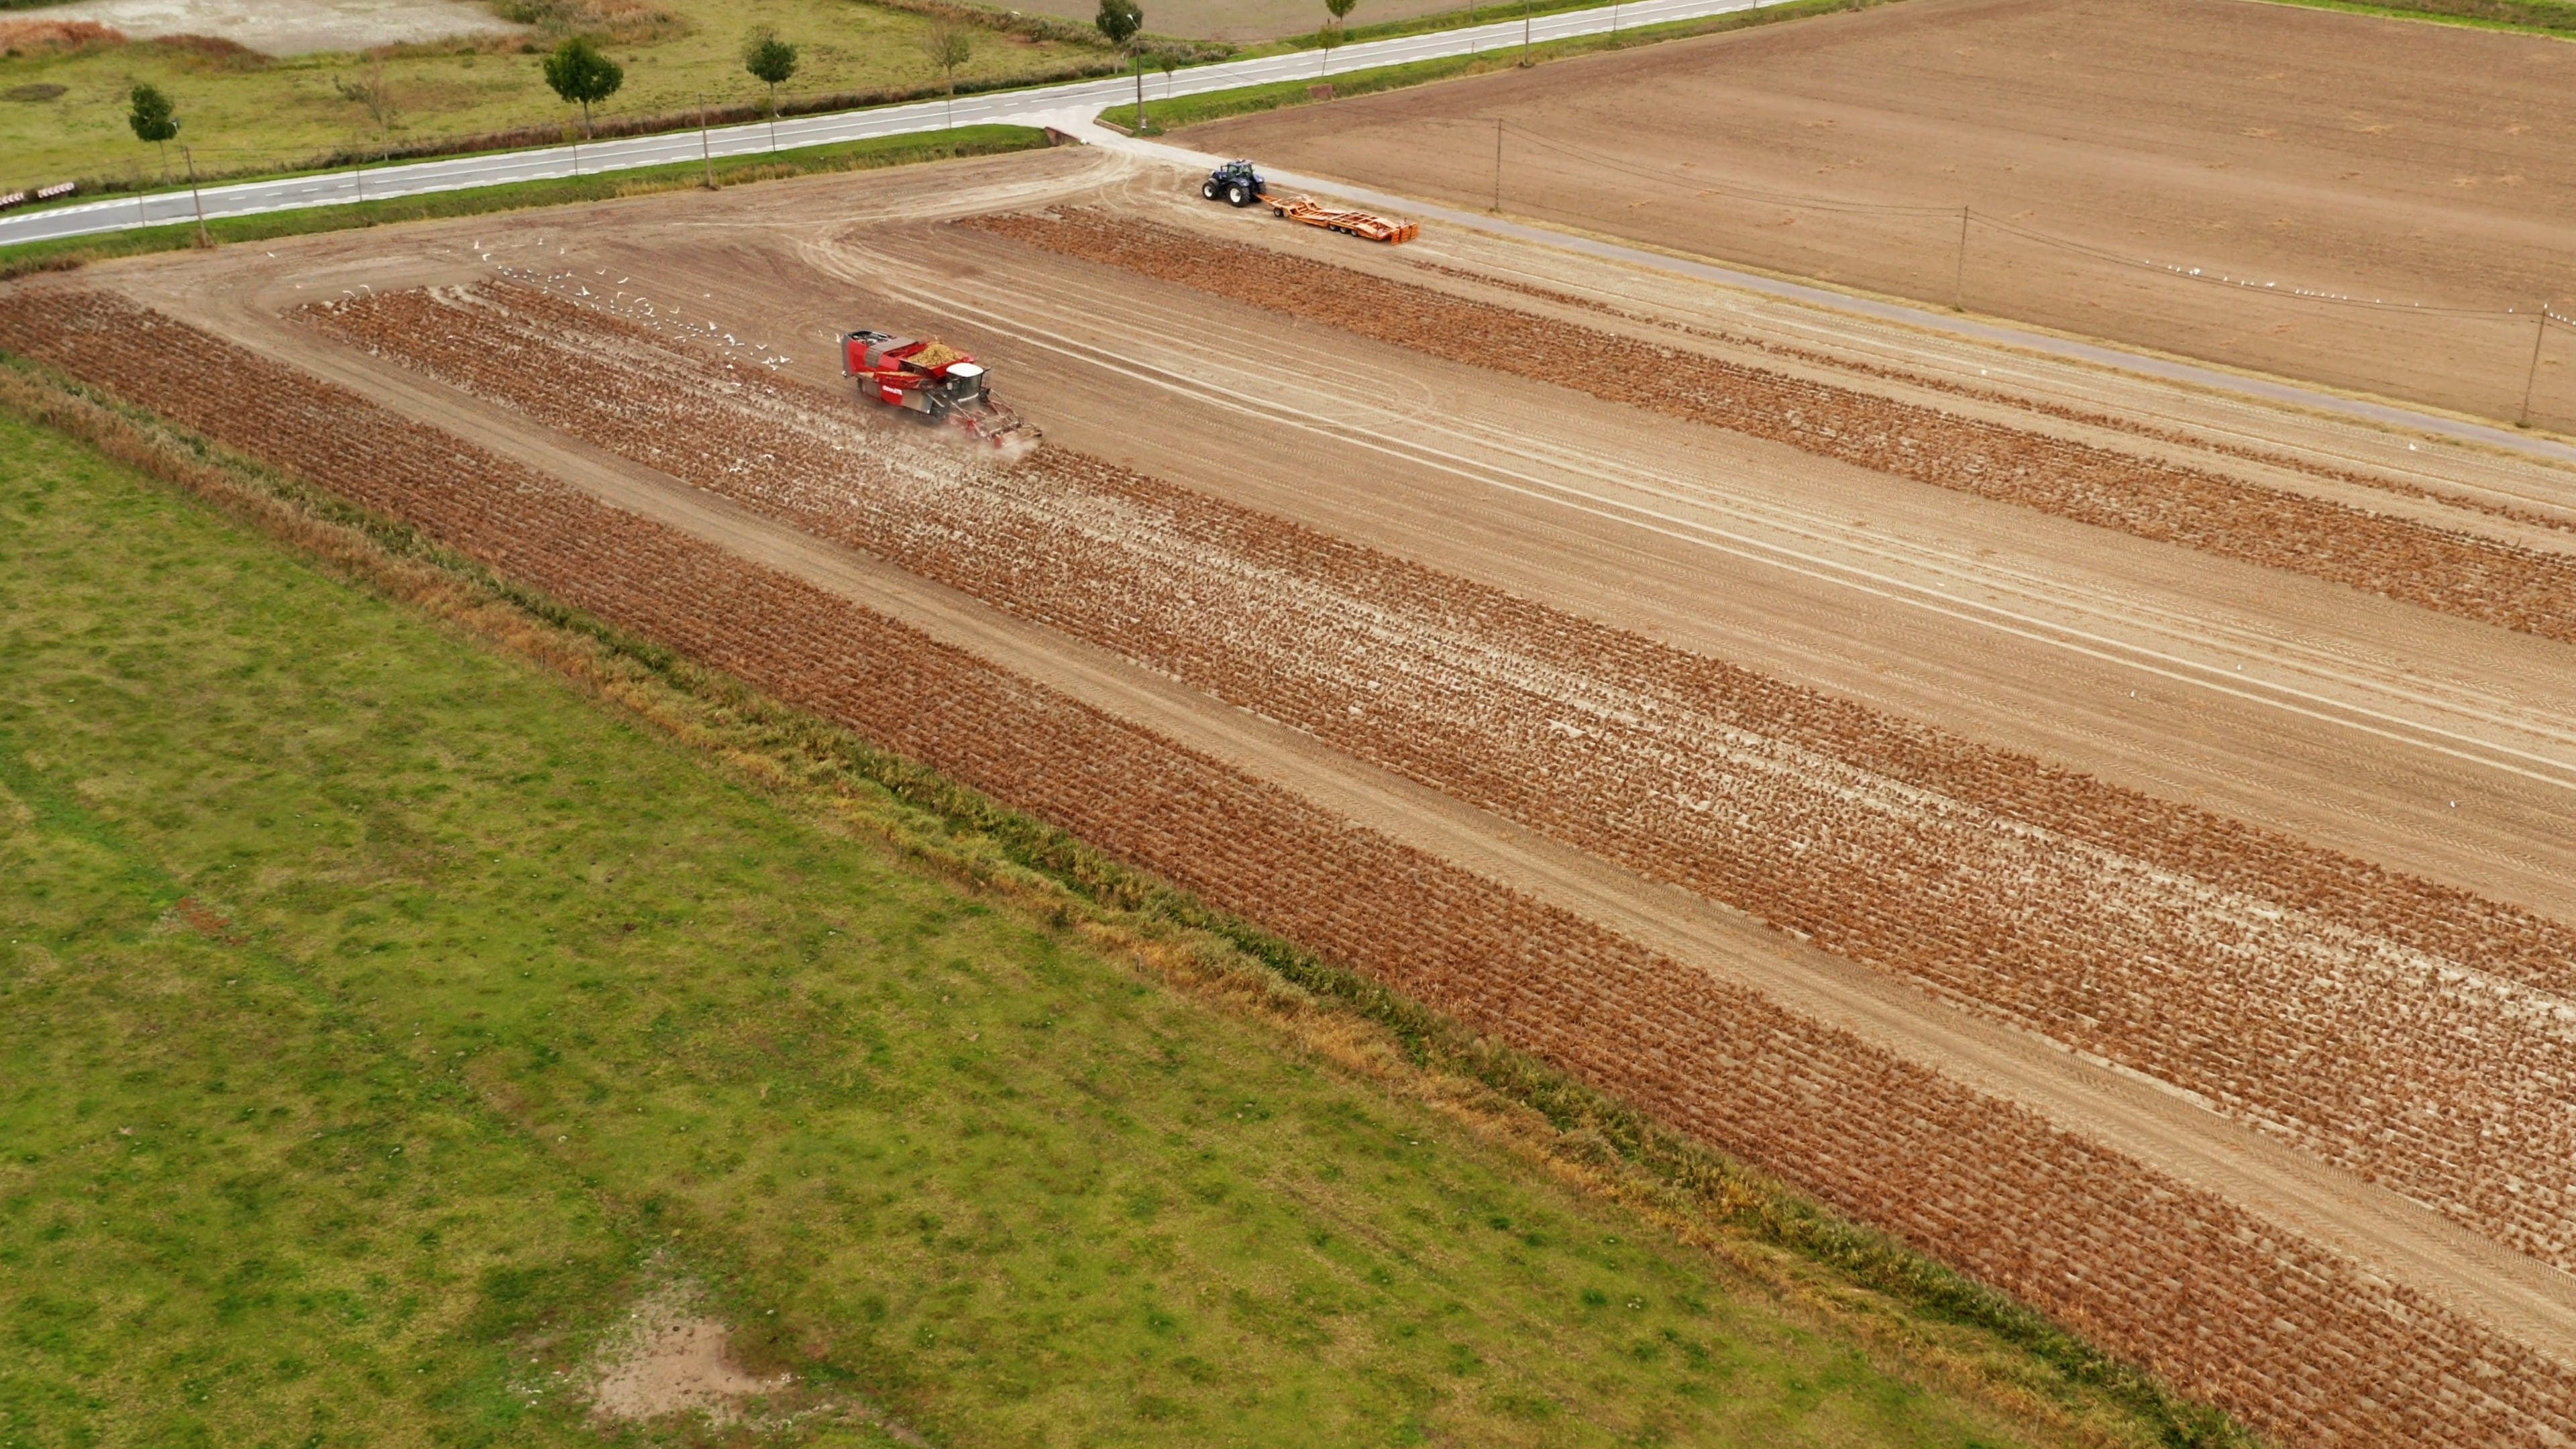 Cultivation Of Land With Tractor